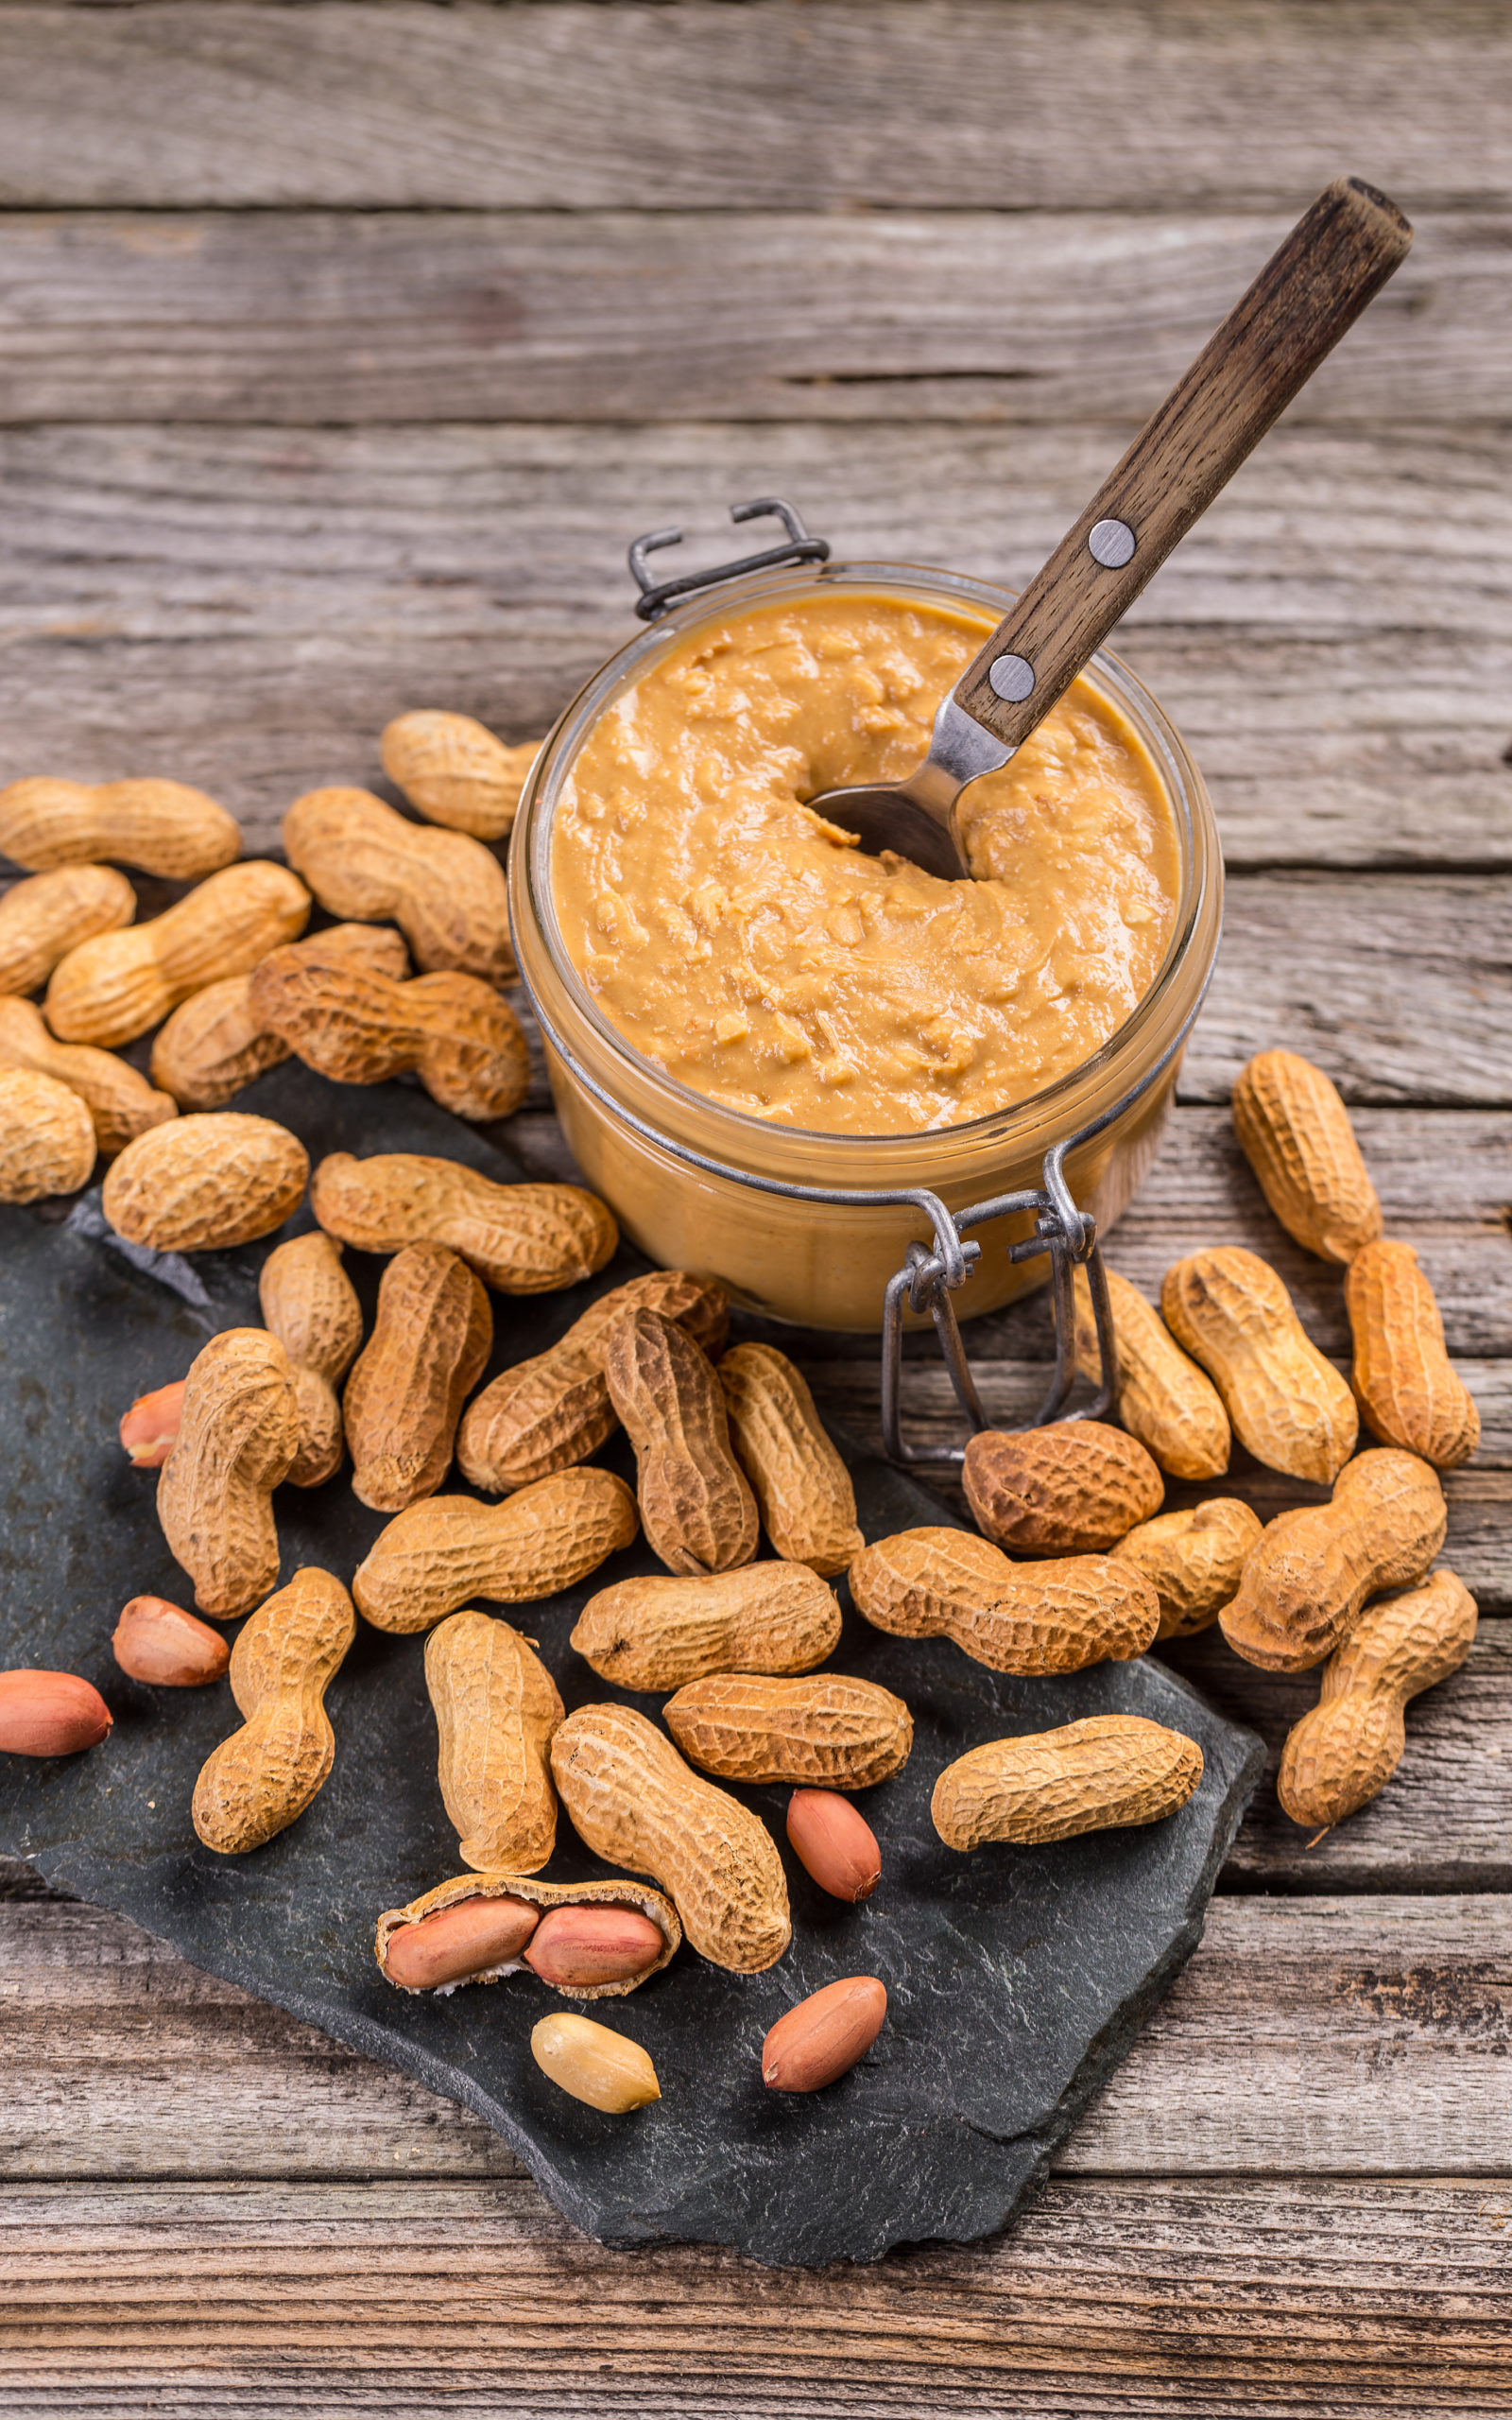 All About Peanuts | Peanut Facts | The Peanut Institute